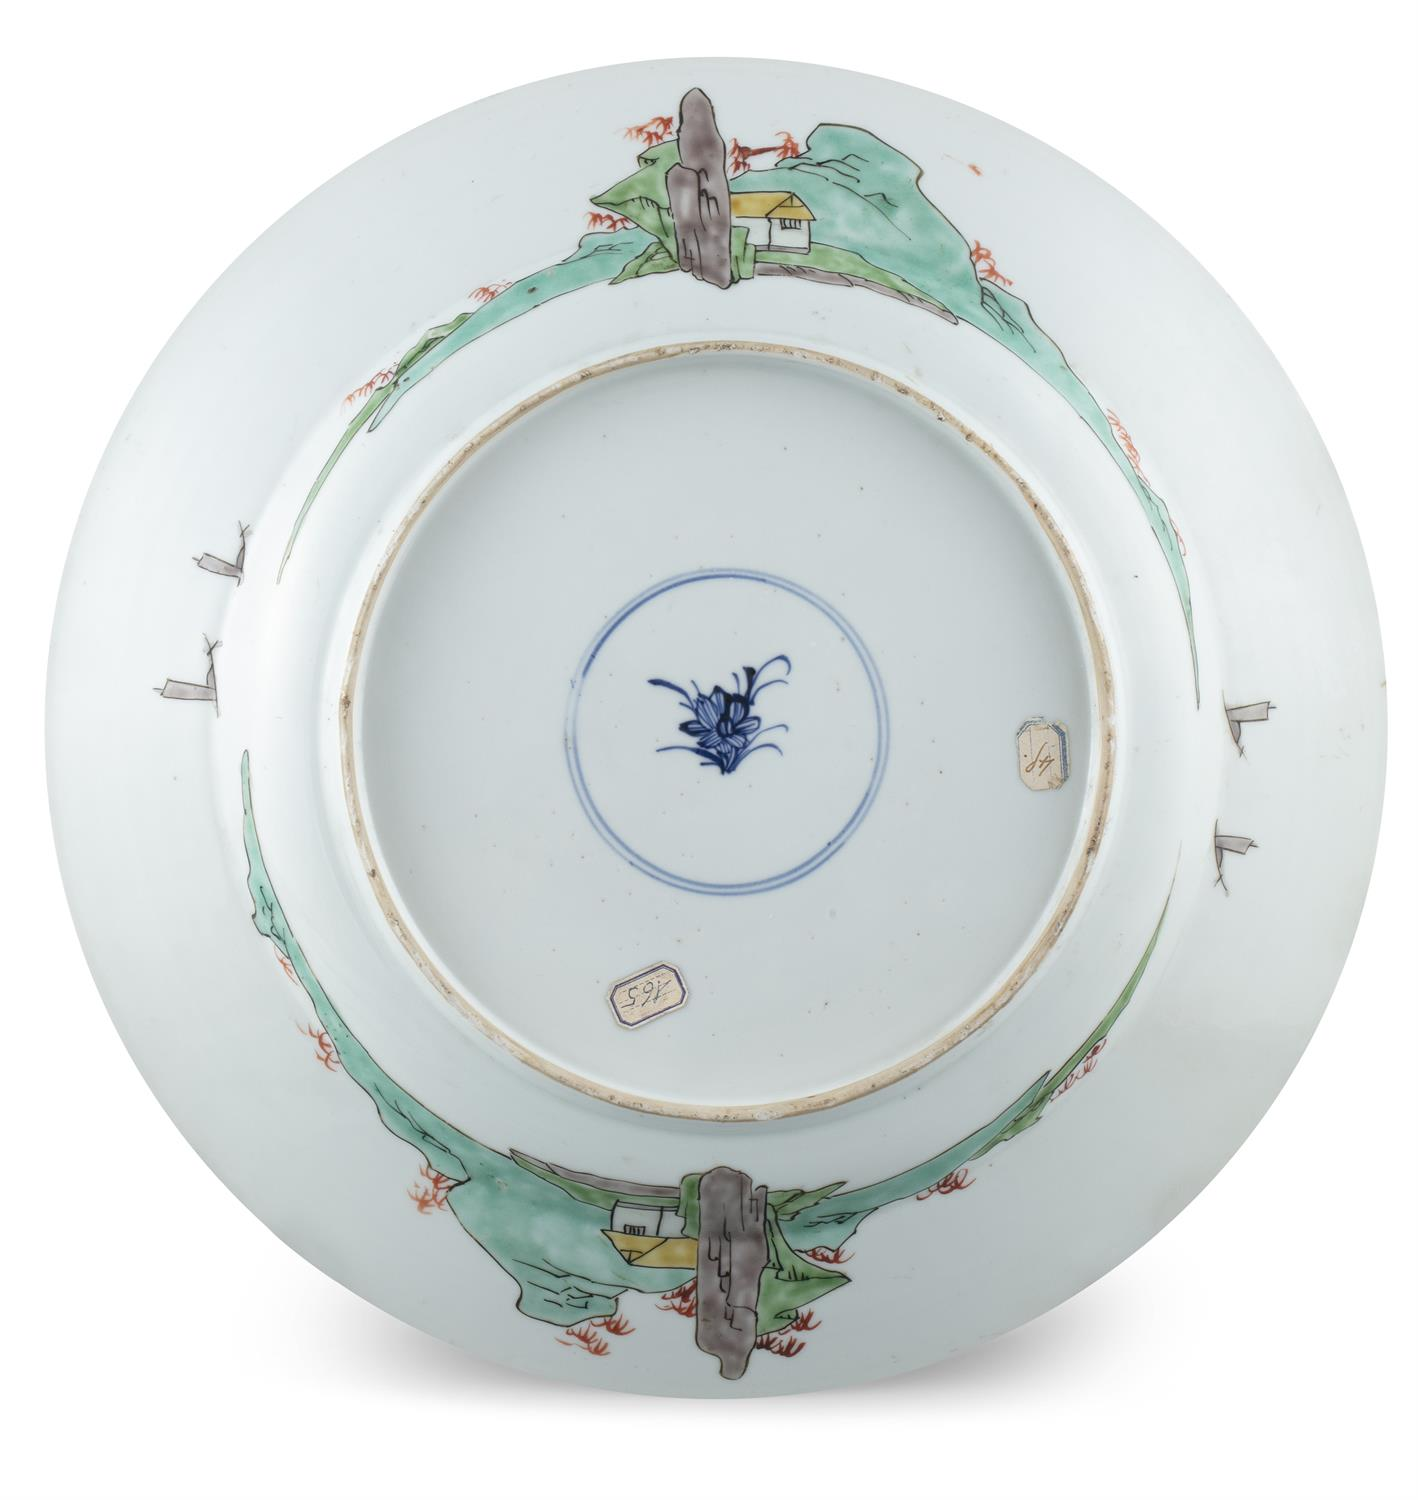 AN IMPORTANT PAIR OF FAMILLE VERTE 'FLYCATCHER AND MAGPIES' PORCELAIN SHALLOW DISHES China, Qing - Image 8 of 35